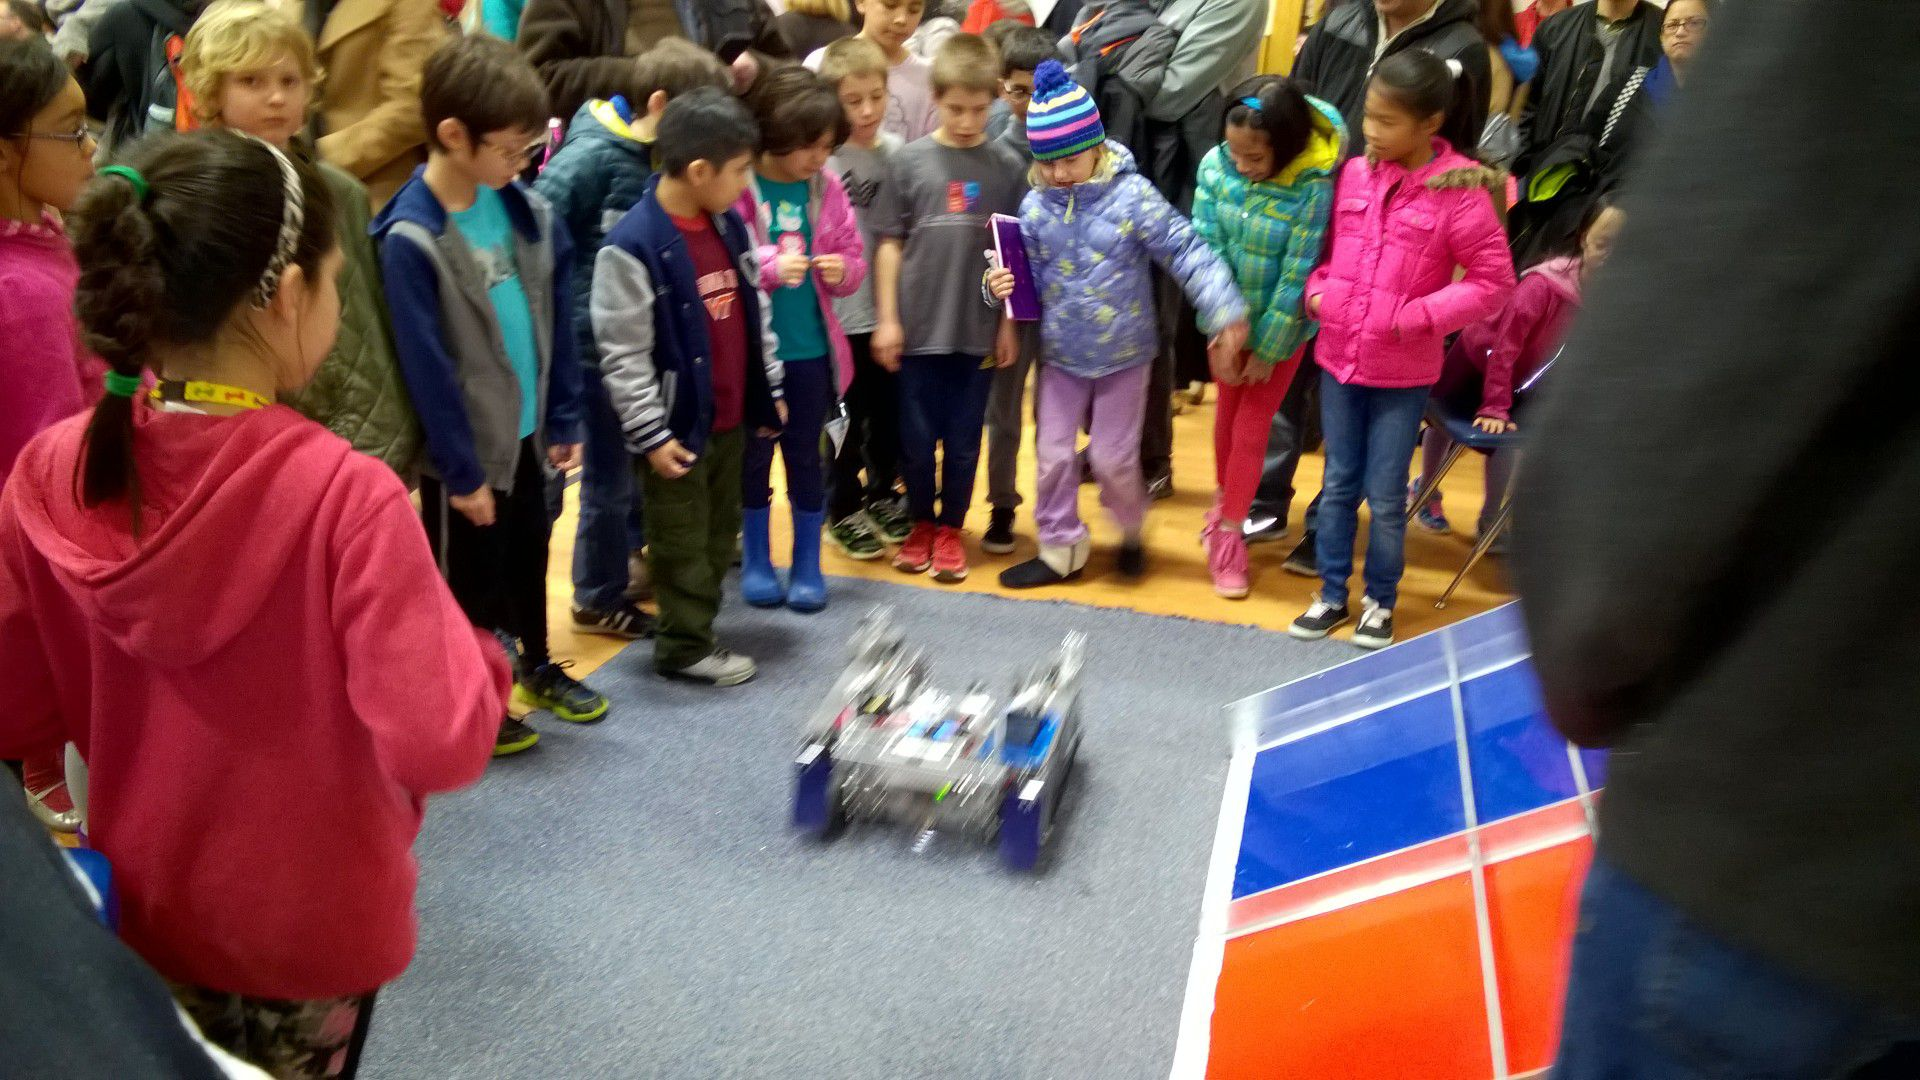 A crowd of children huddle around a robot in the center.